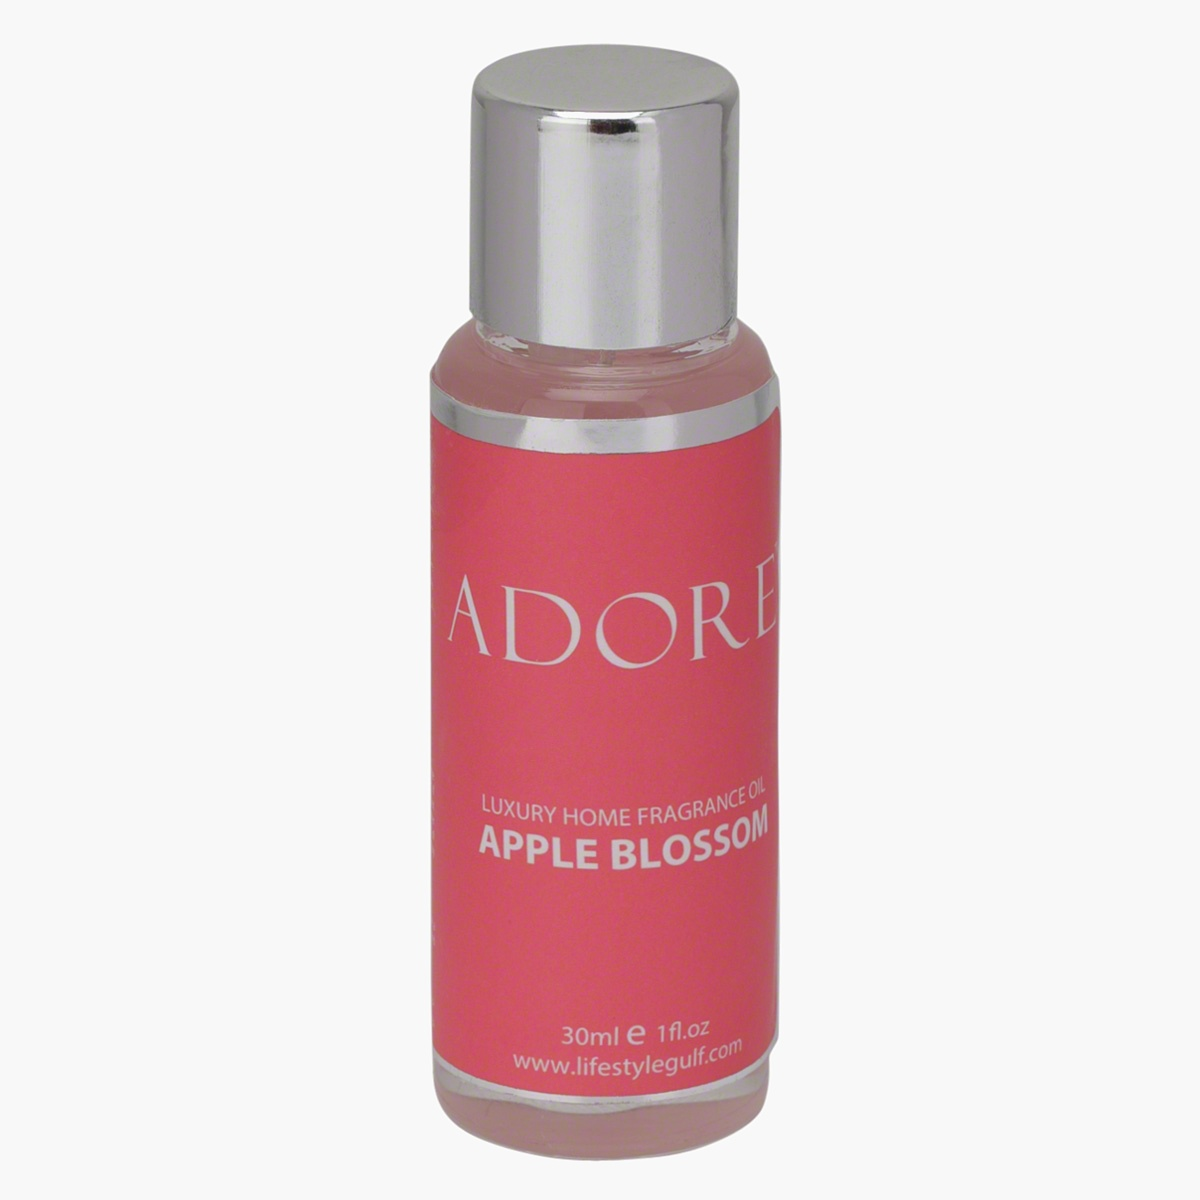 Adore Apple Blossom Home Fragrance Oil - 30 ml